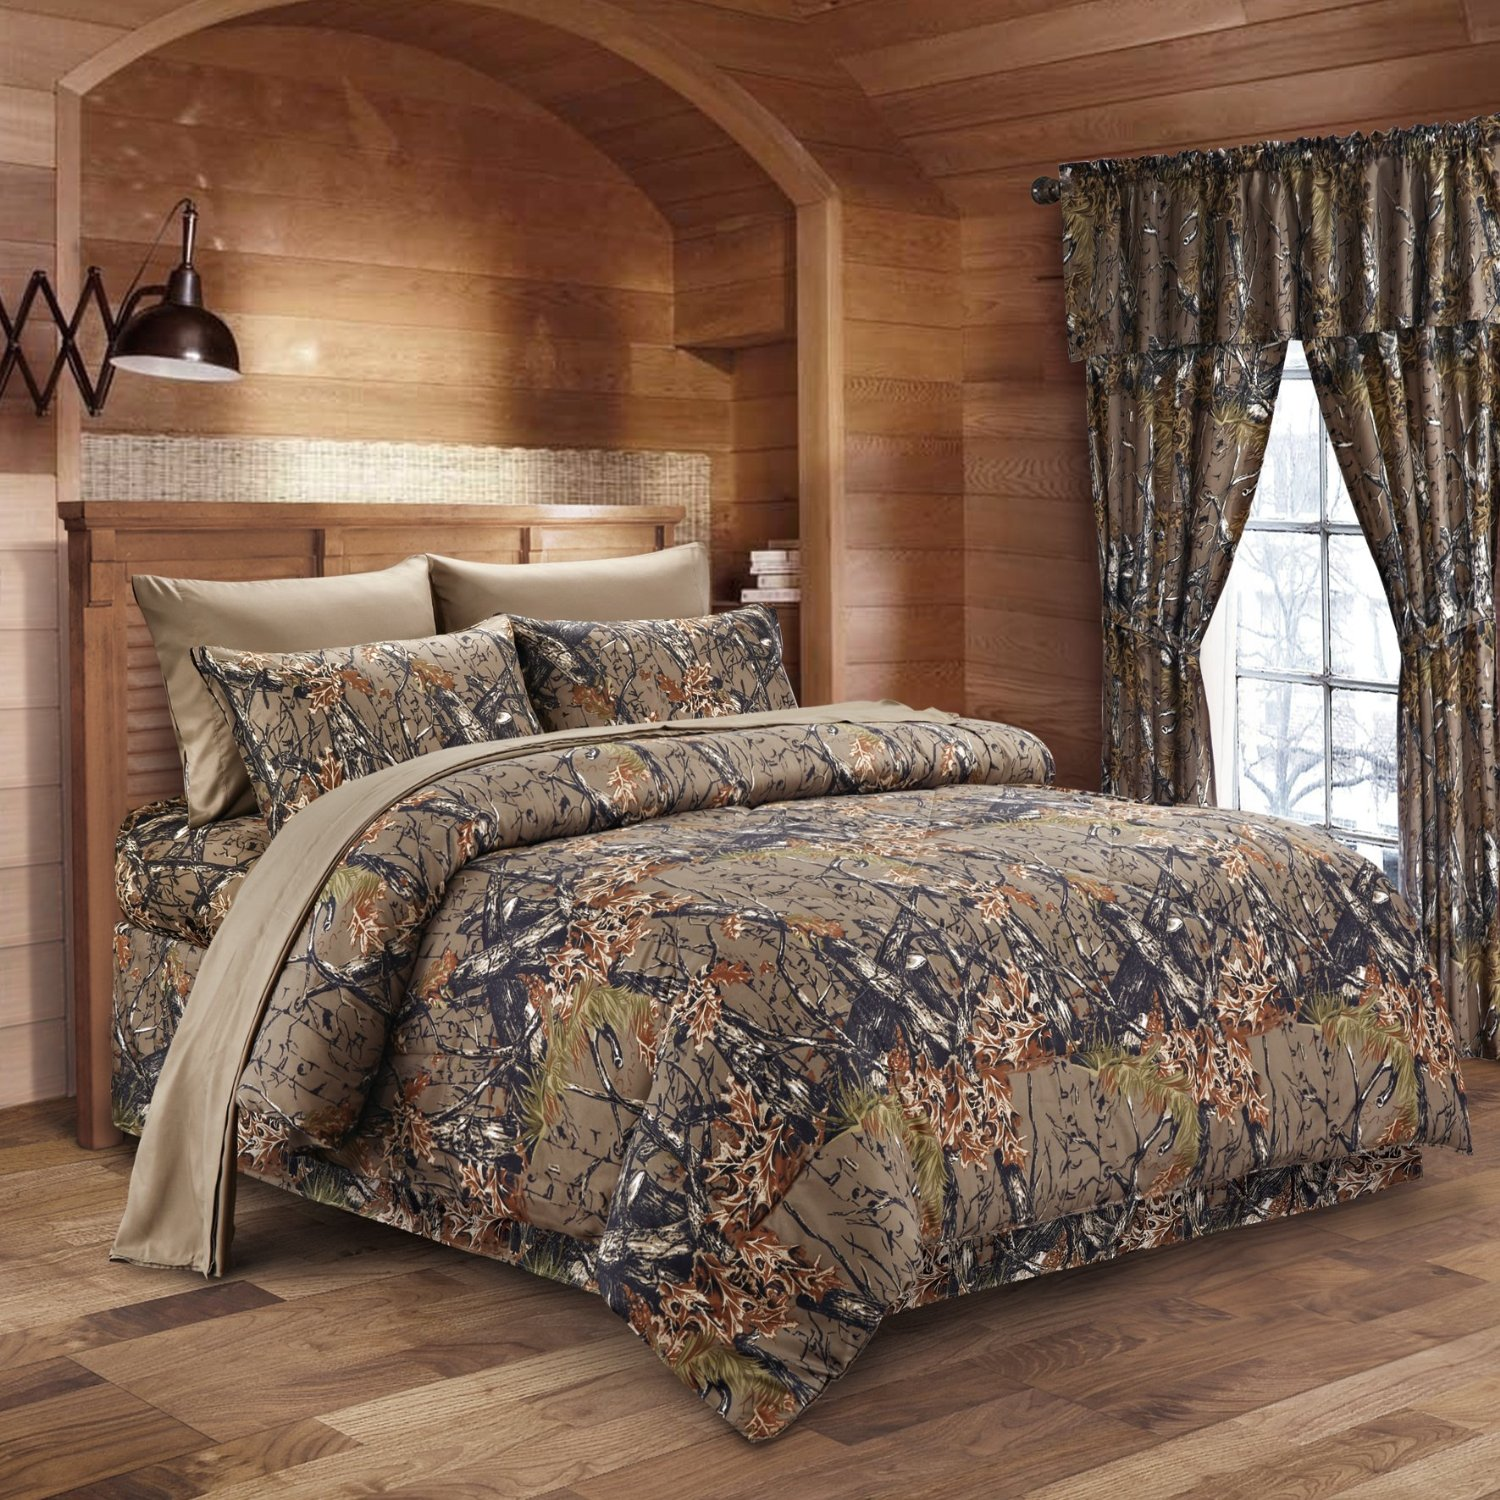 Regal Comfort 8pc King Size Woods Natural Green Camouflage Premium Comforter, Sheet, Pillowcases,& Bed Skirt Set Camo Bedding Set For Hunters Cabin or Rustic Lodge Teens Boys and Girls